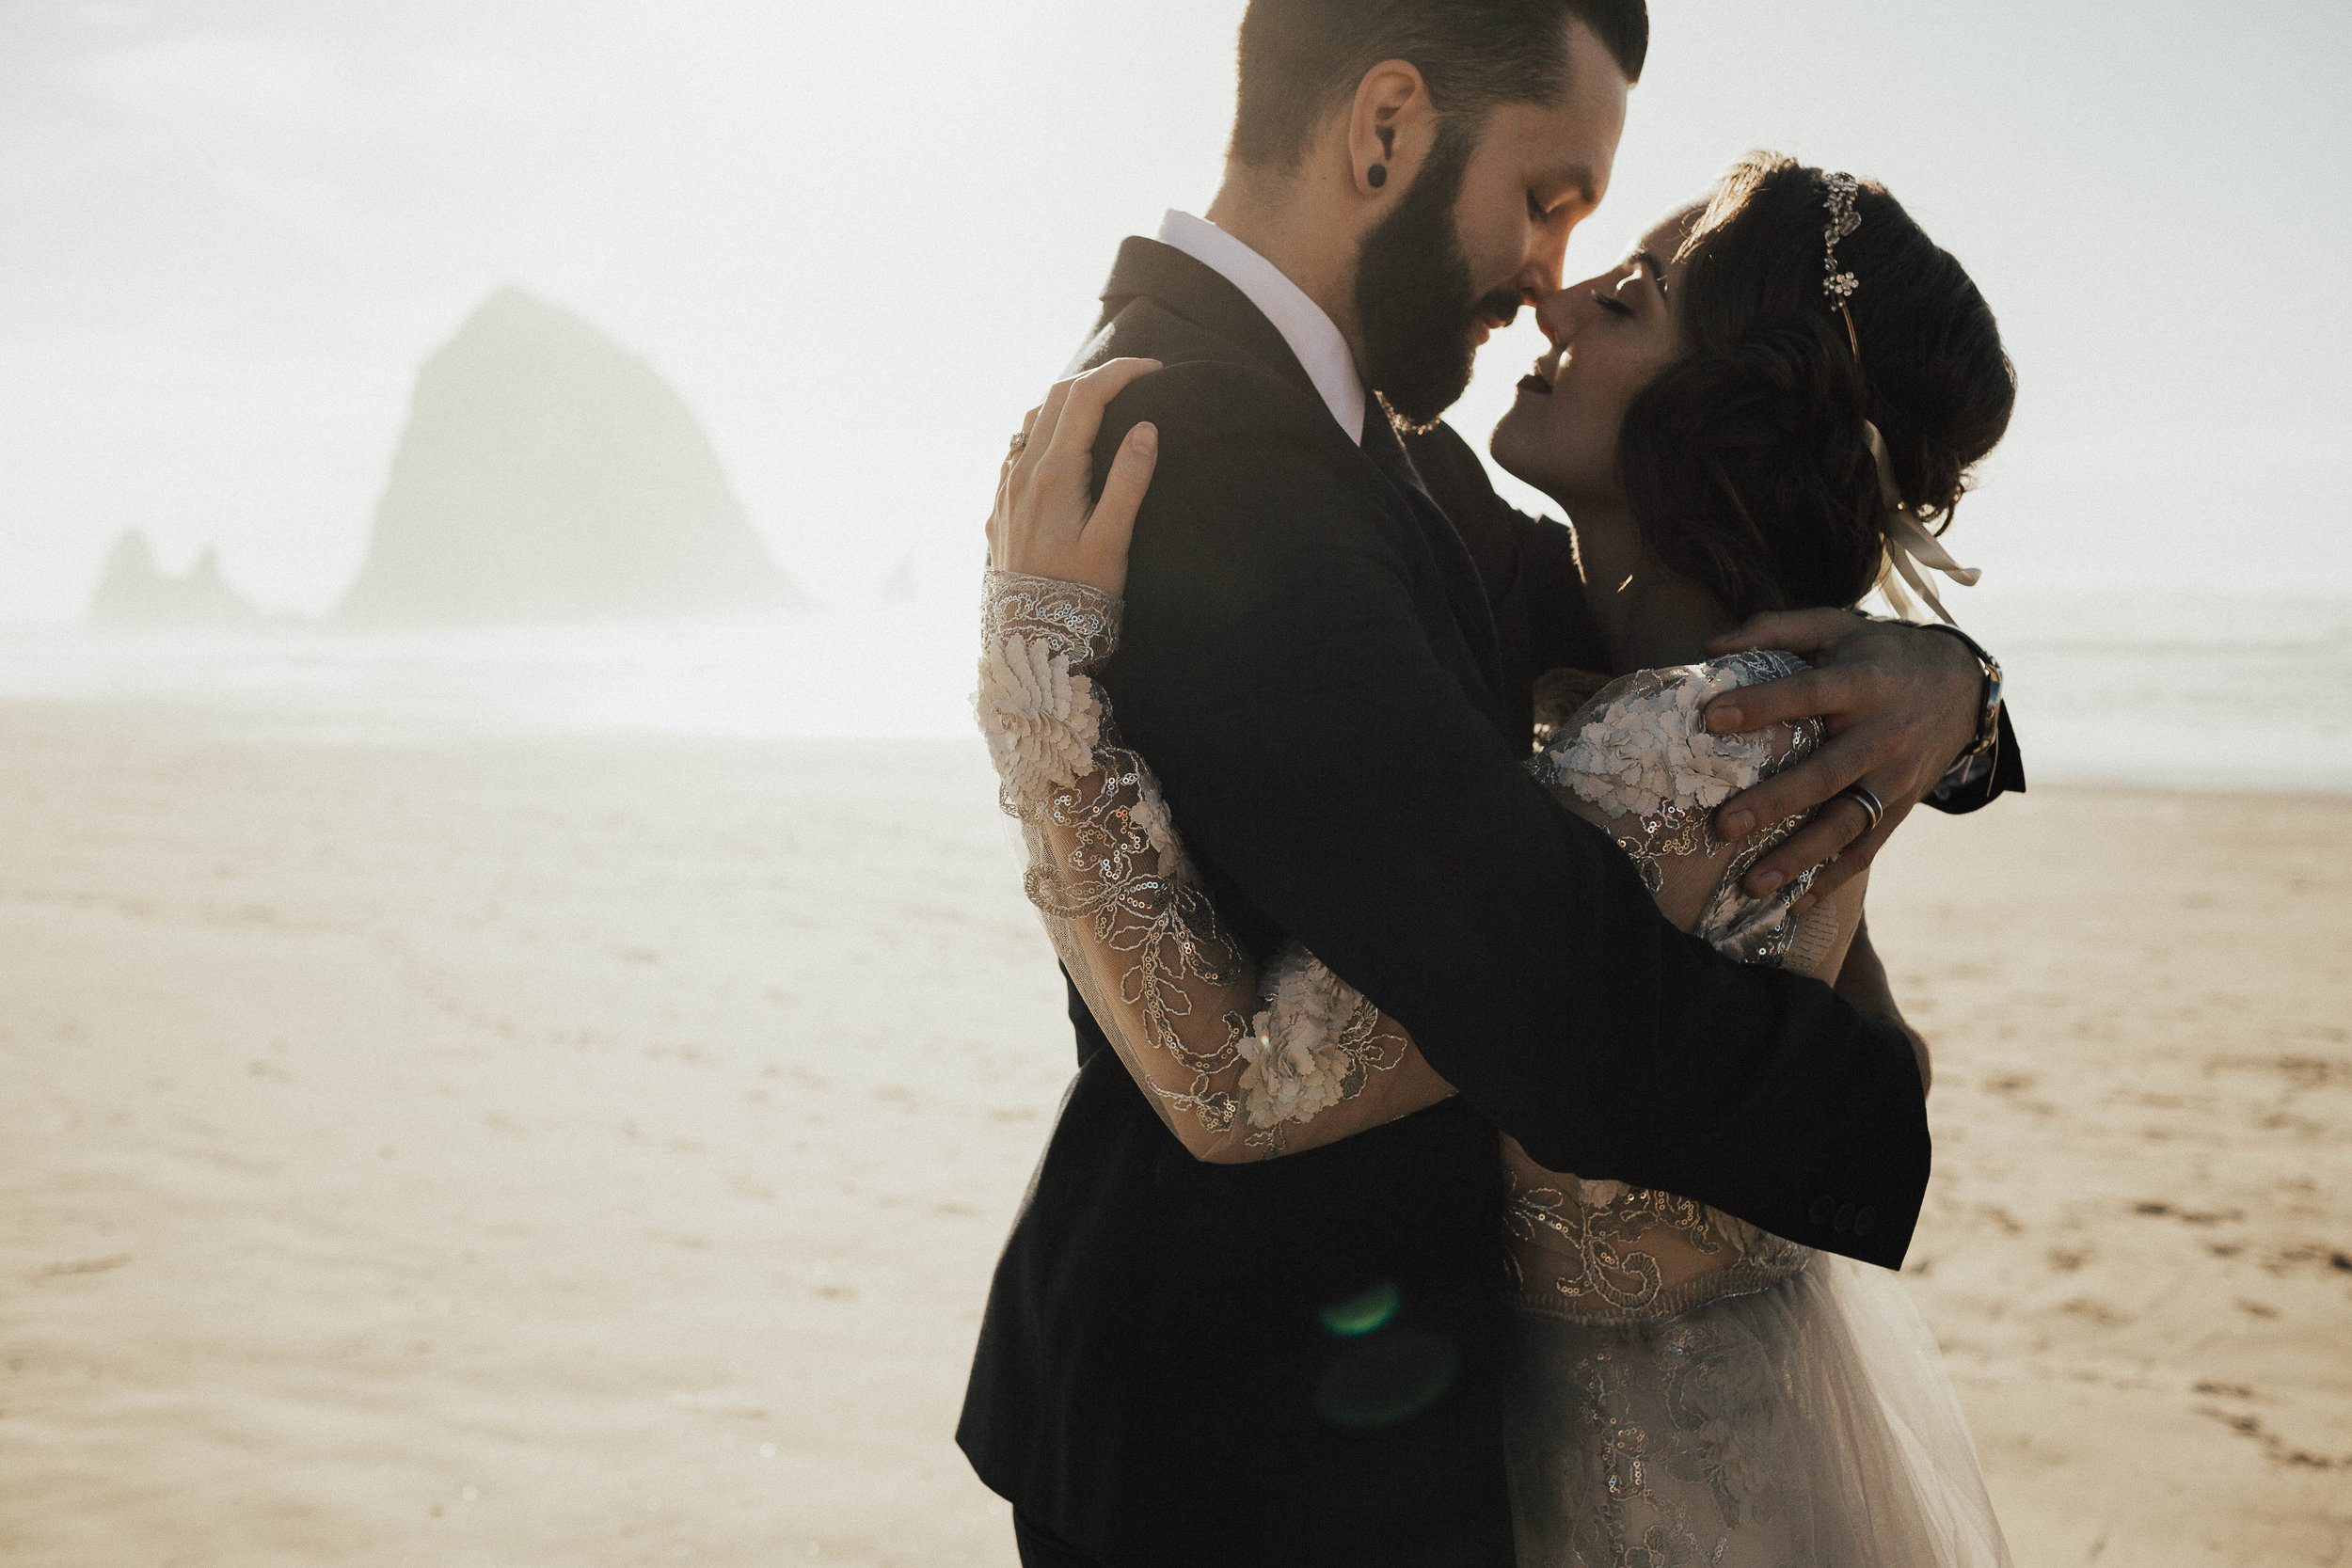 Cannon Beach Elopement - Michelle Larmand Photography - 045